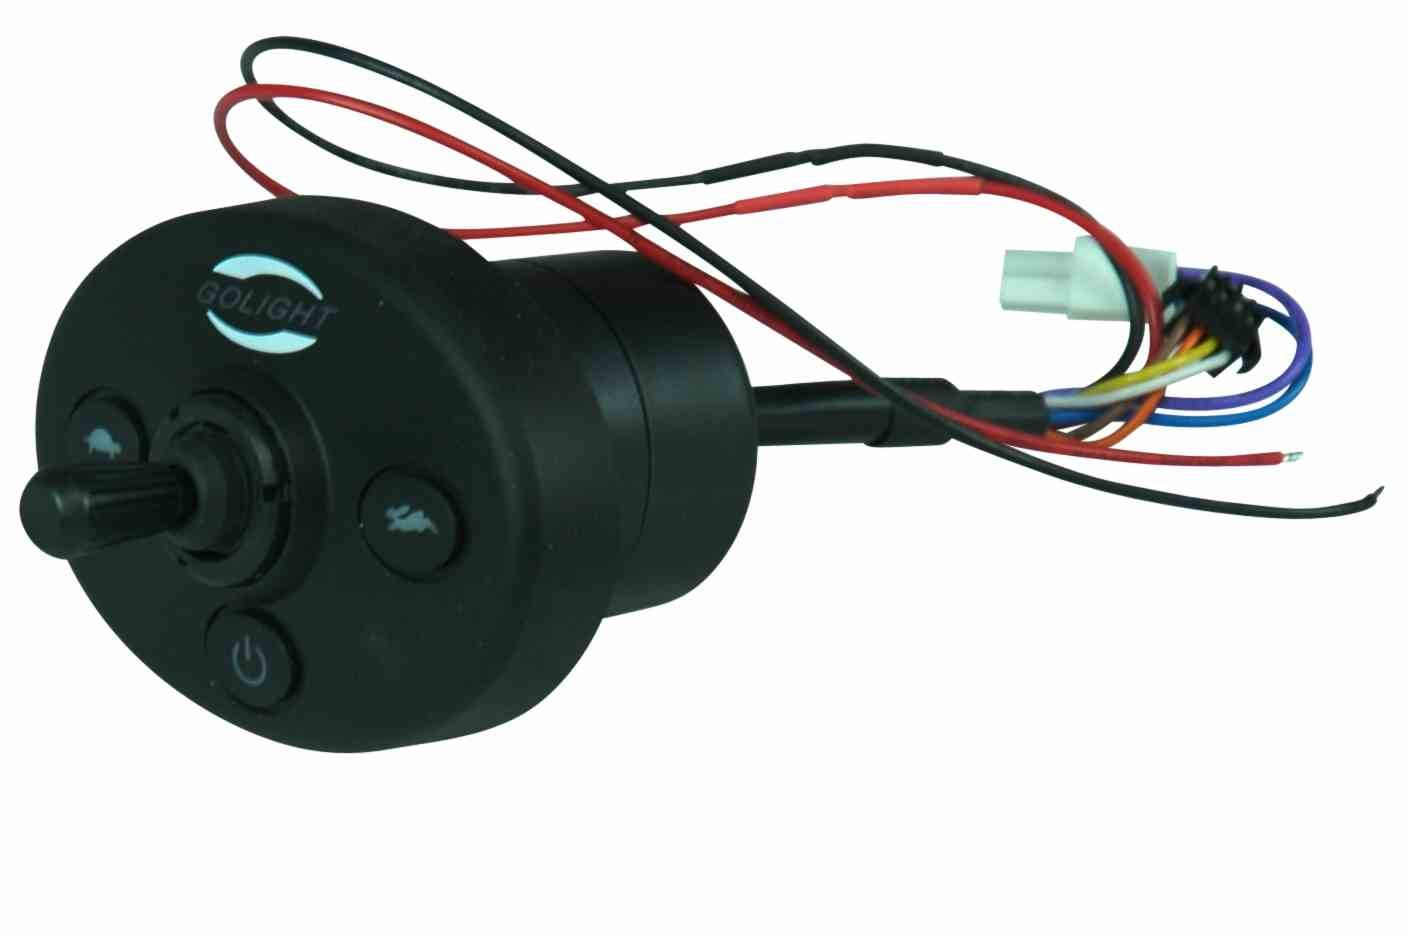 Replacement Dash Mount Controller for Golight 3020, 3021 and 3026 remote control spotlights